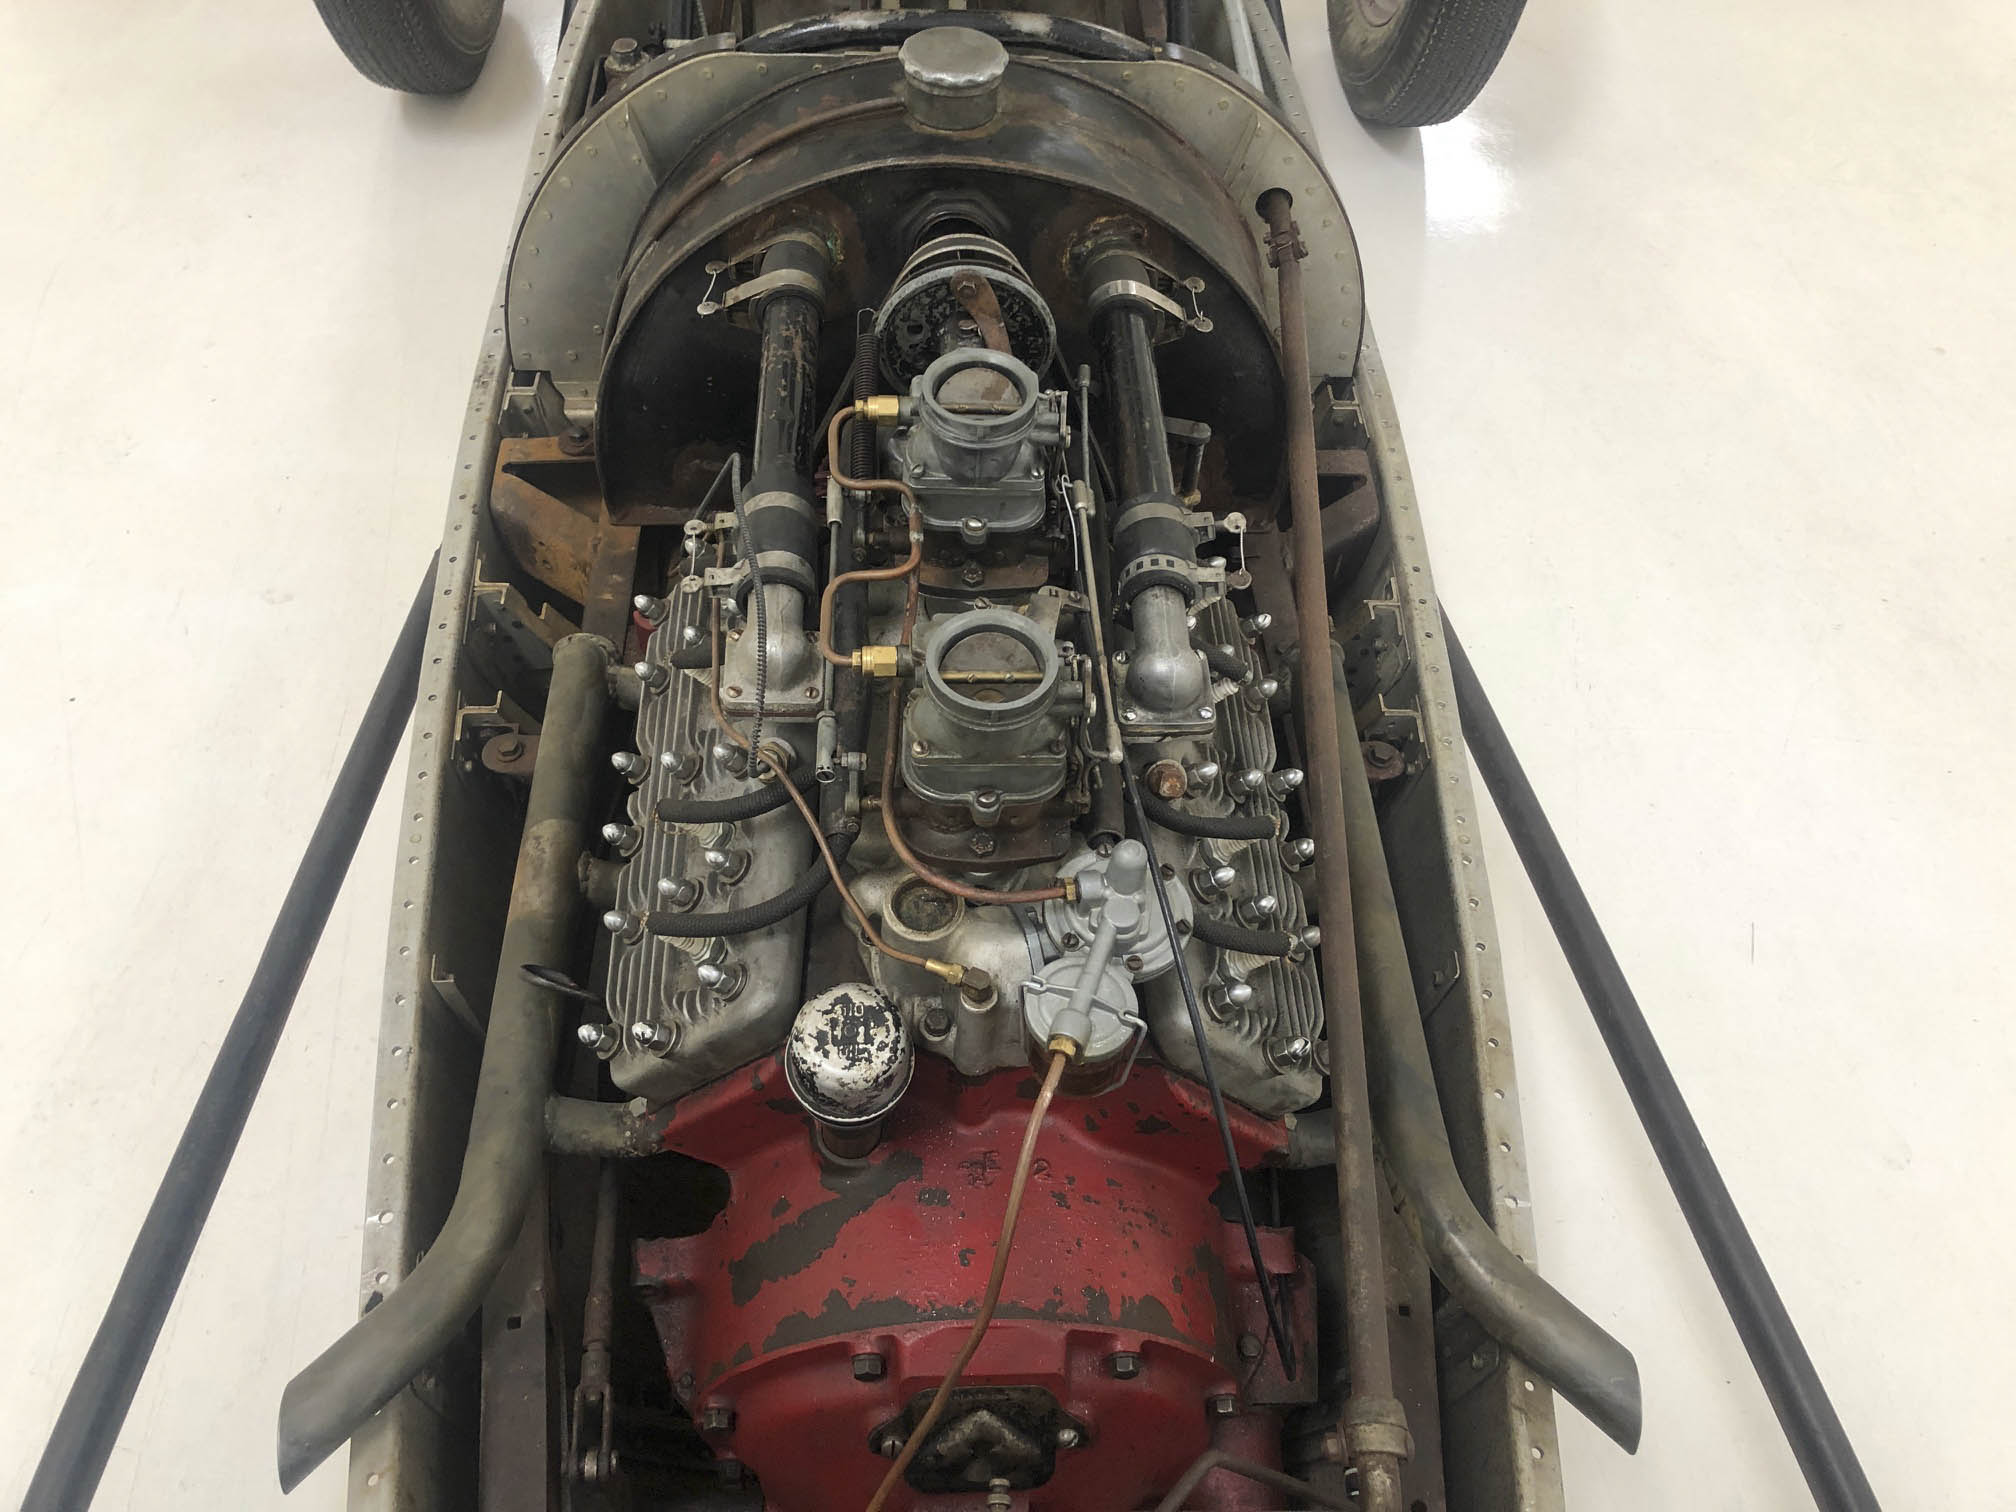 1949 Belly Tank Lakester engine